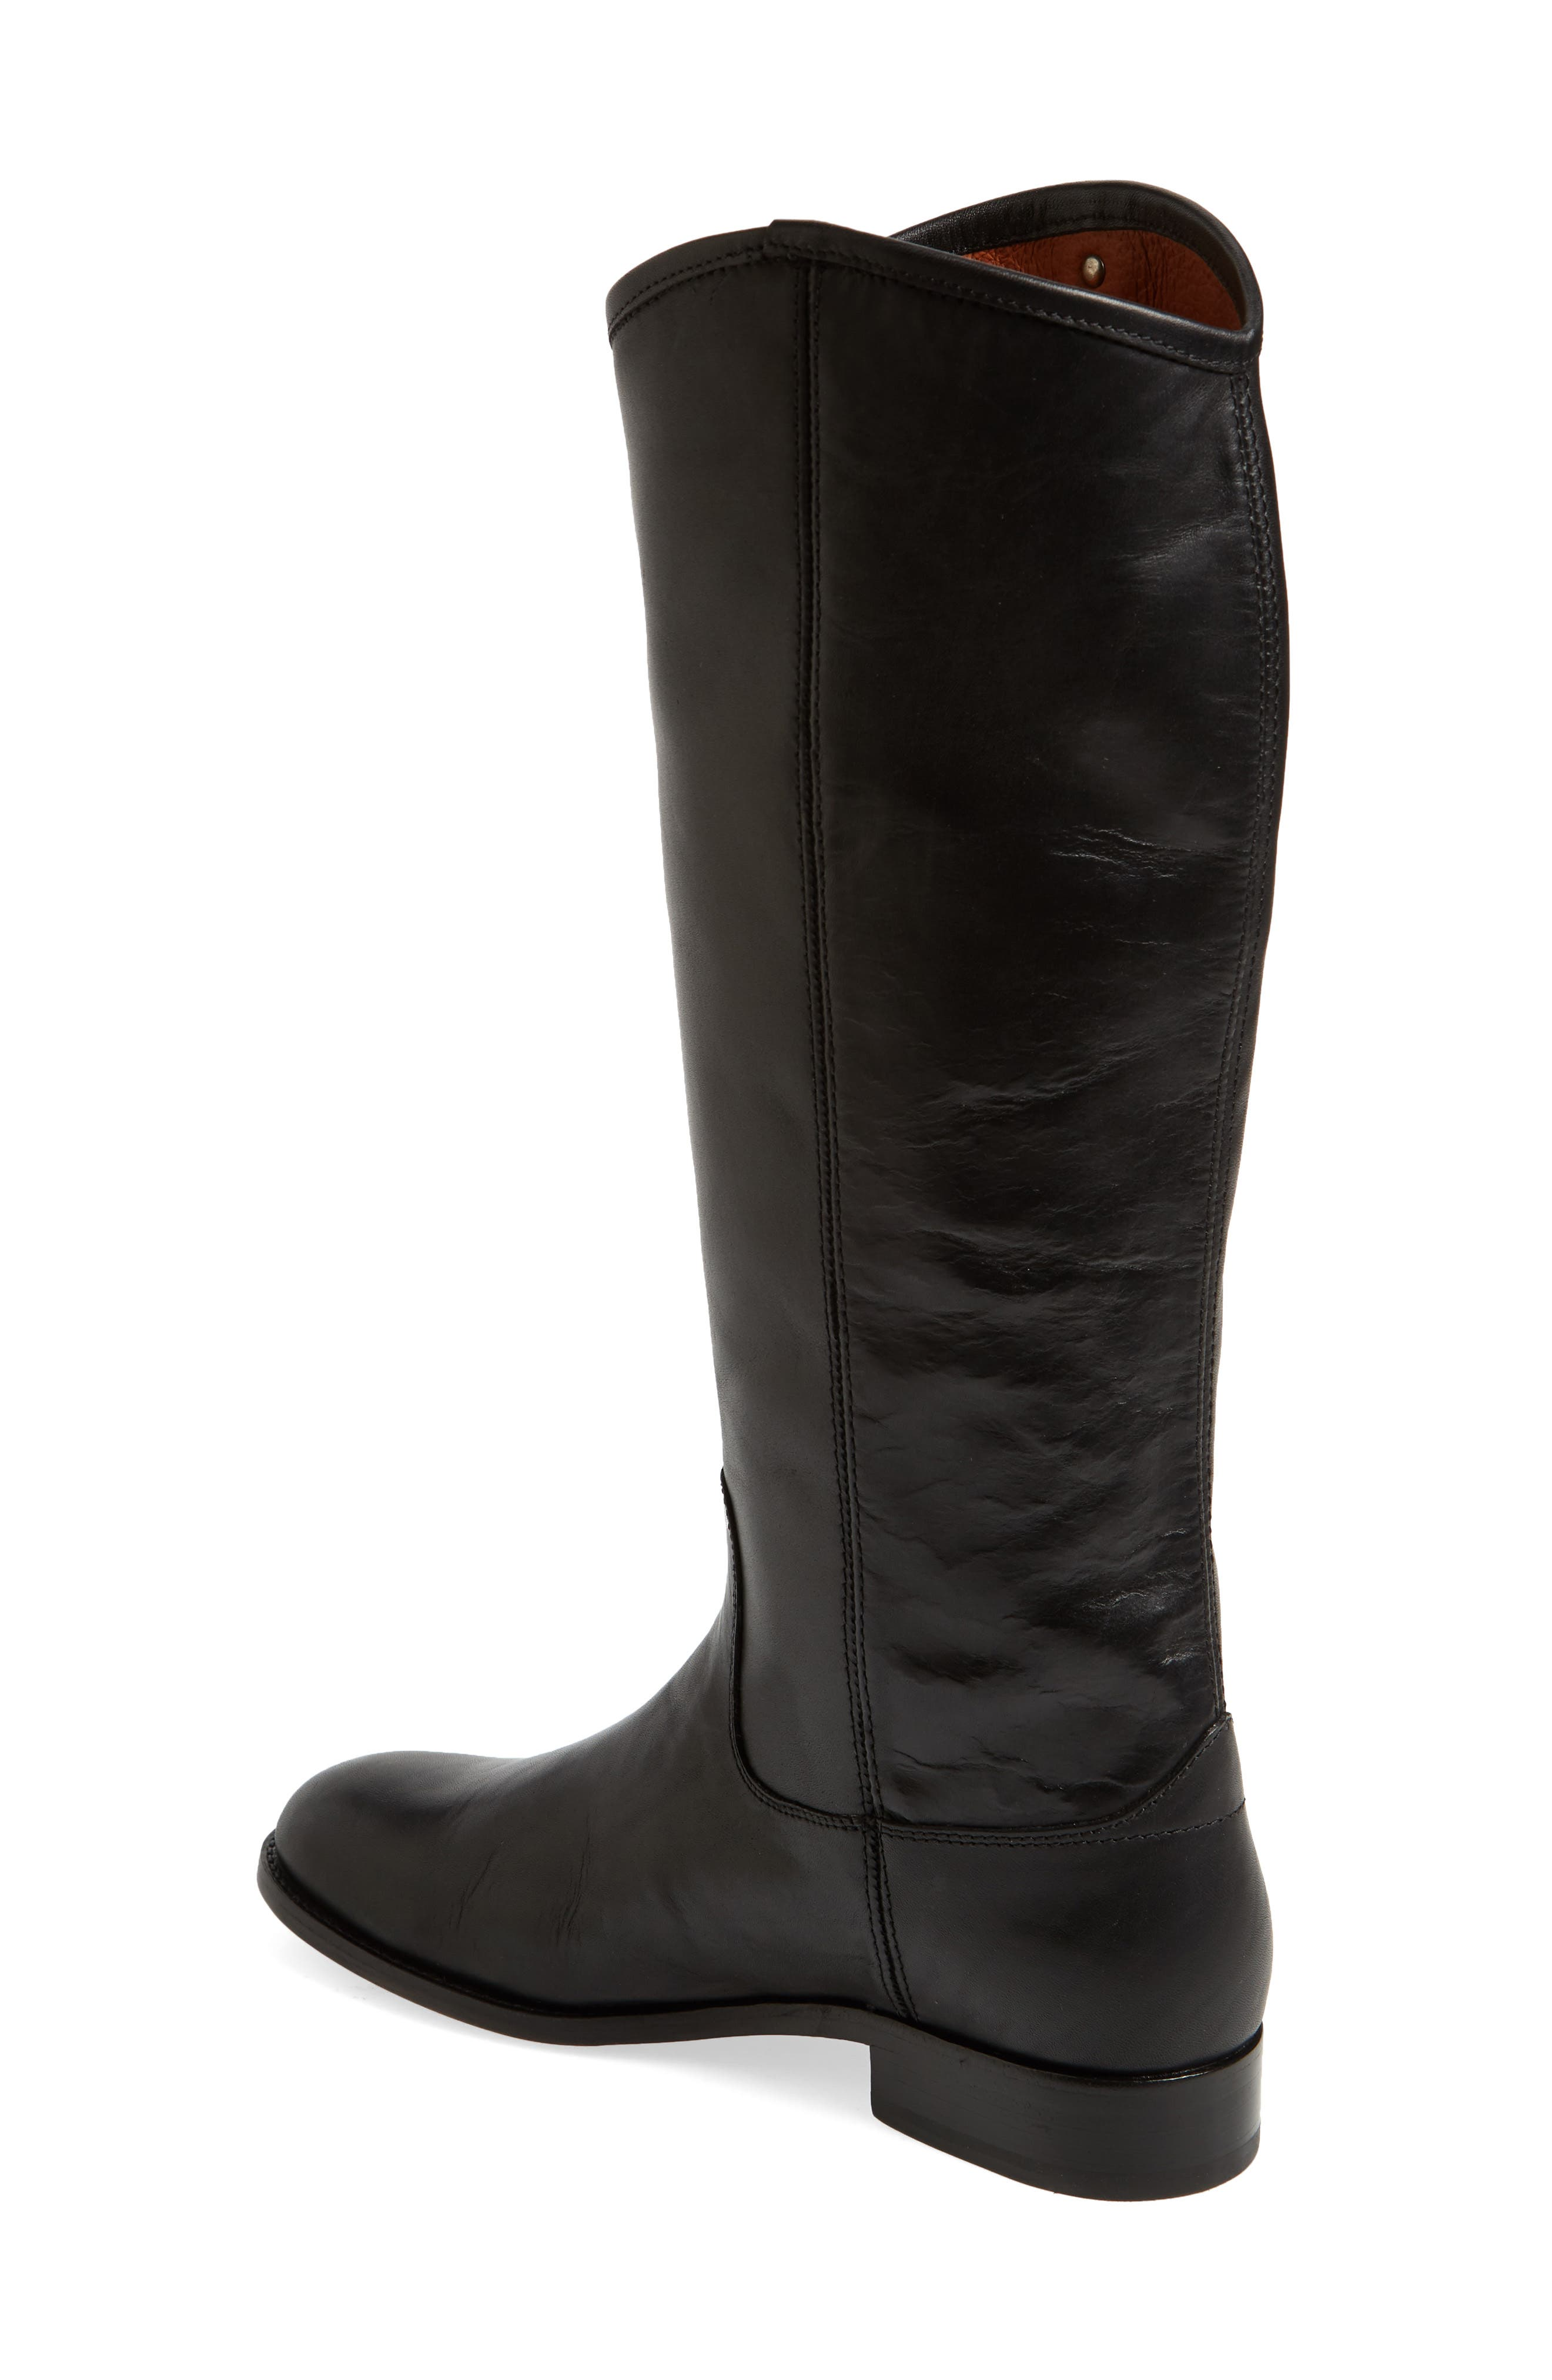 Melissa Button 2 Knee High Boot,                             Alternate thumbnail 2, color,                             001